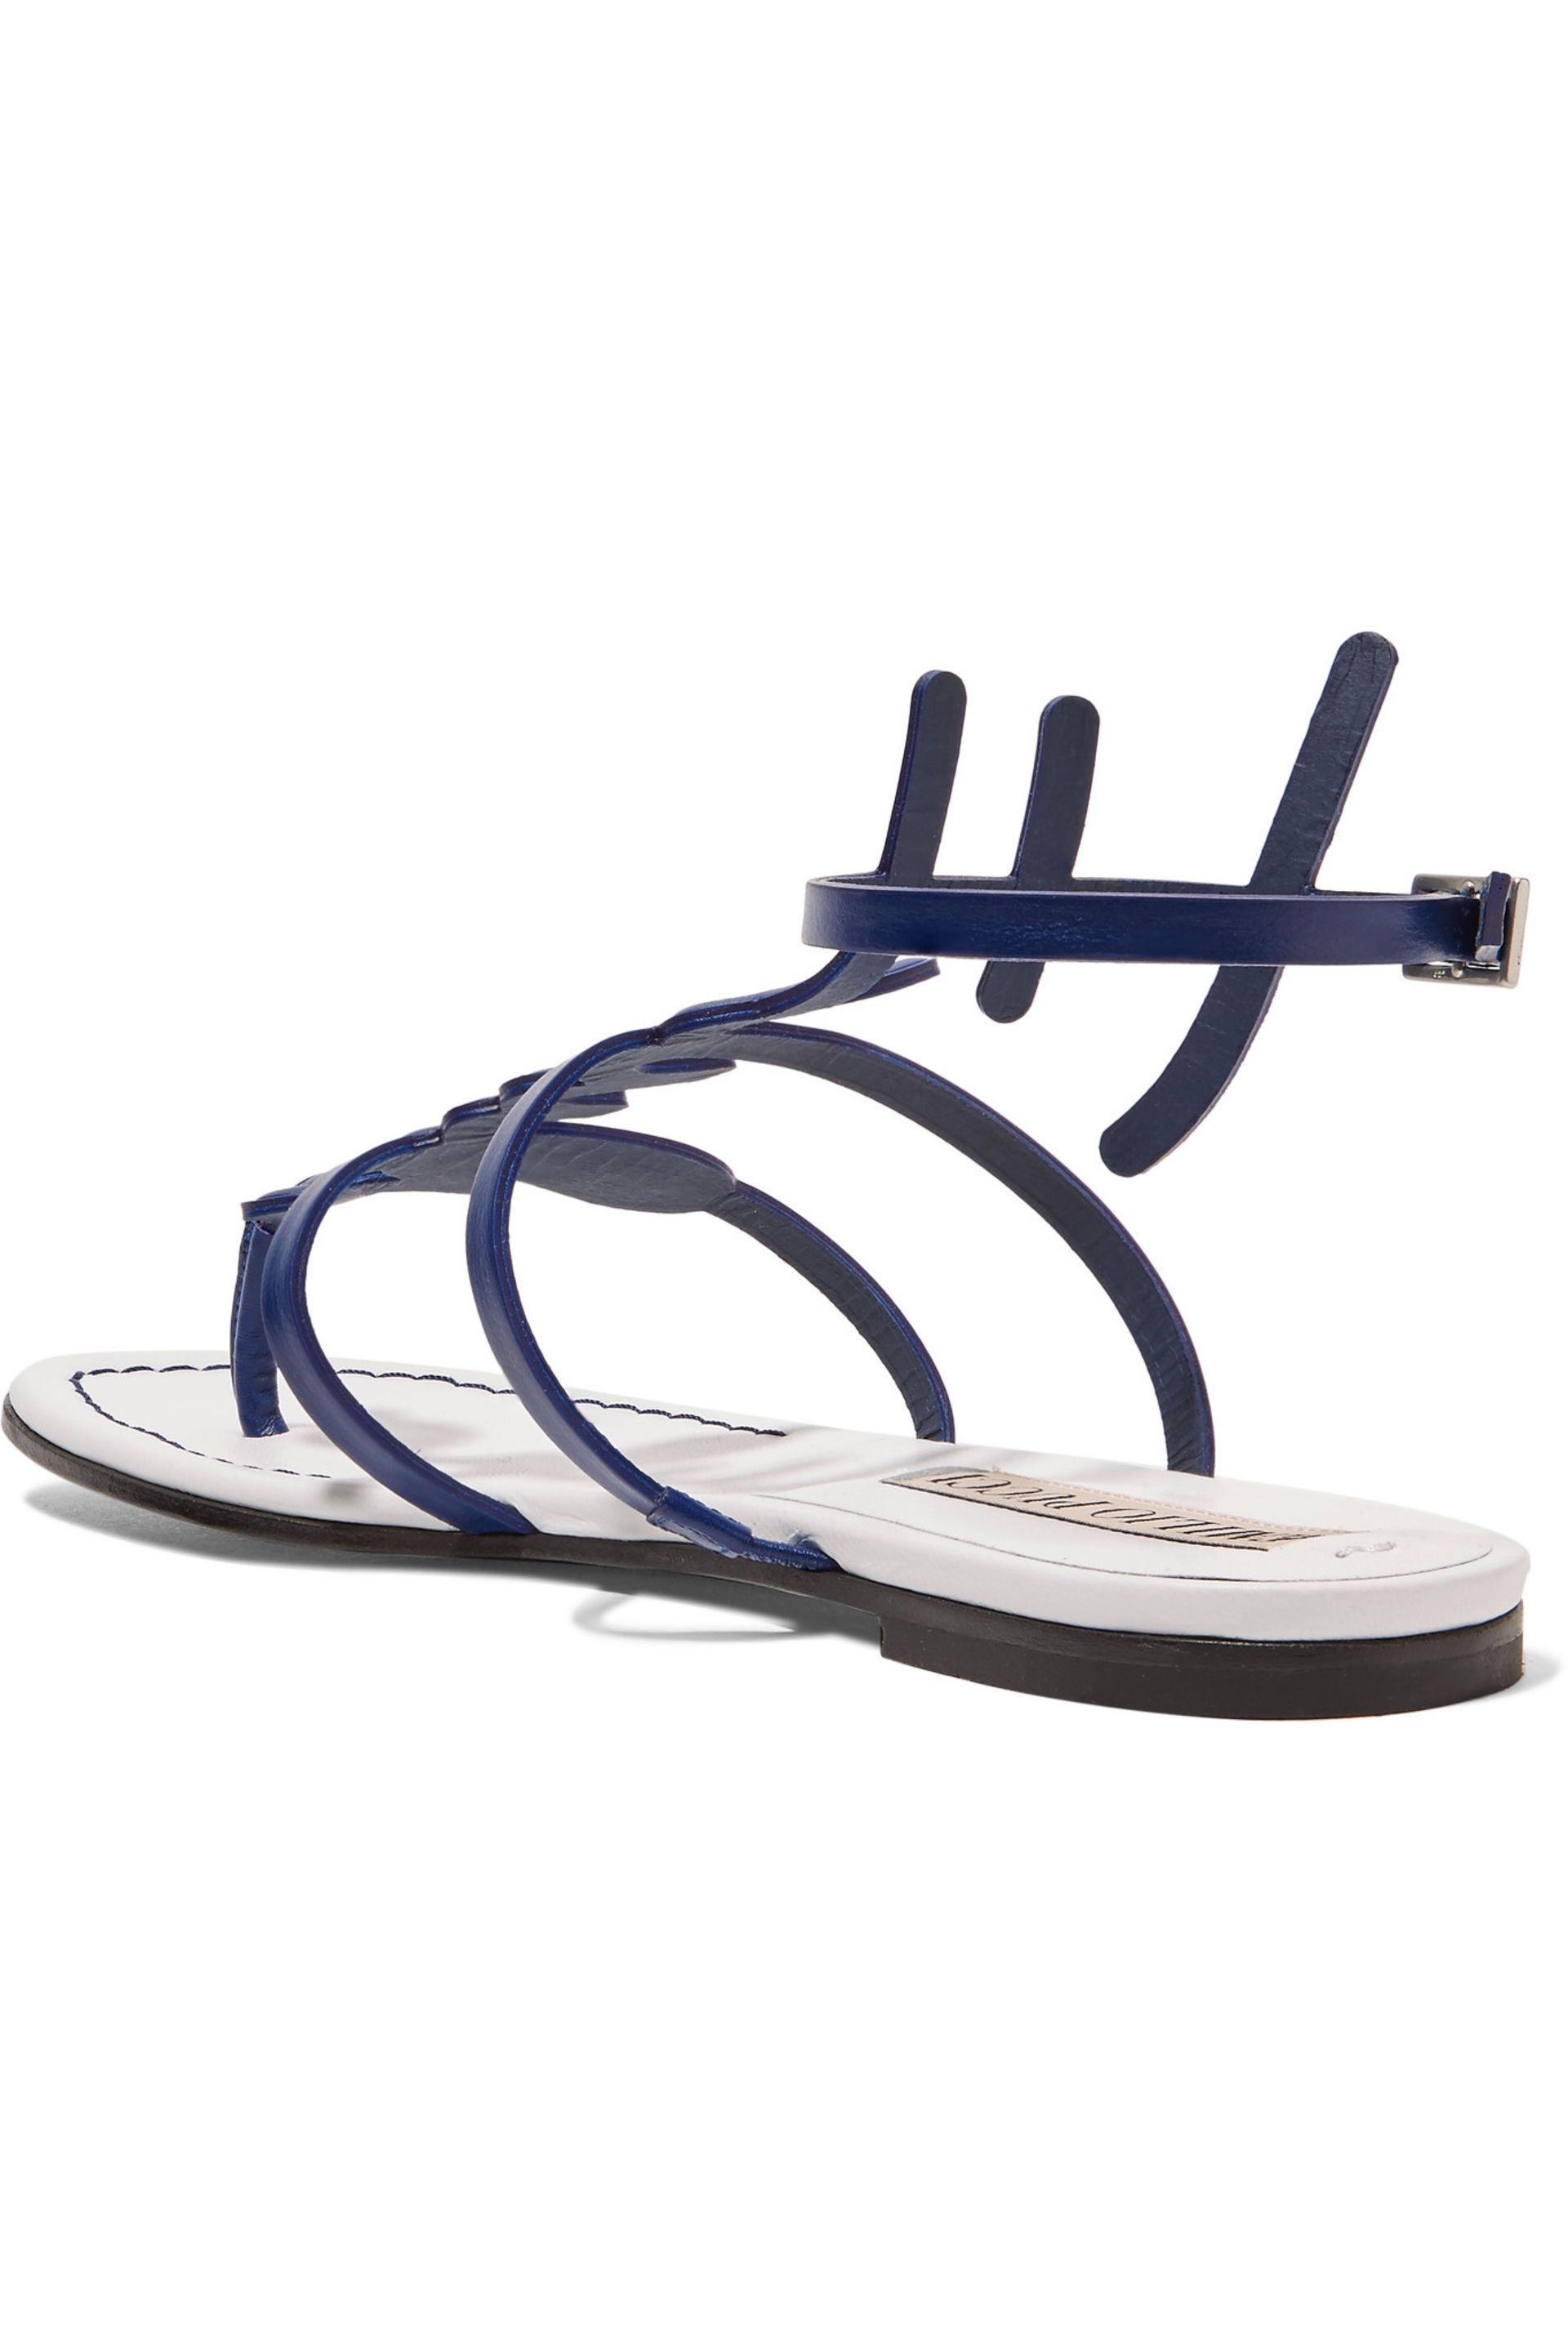 Emilio Pucci Leather Sandal Clearance Extremely Fashion Style Sale Choice With Credit Card Online Discount Wholesale Price 9mLpzI0JEA